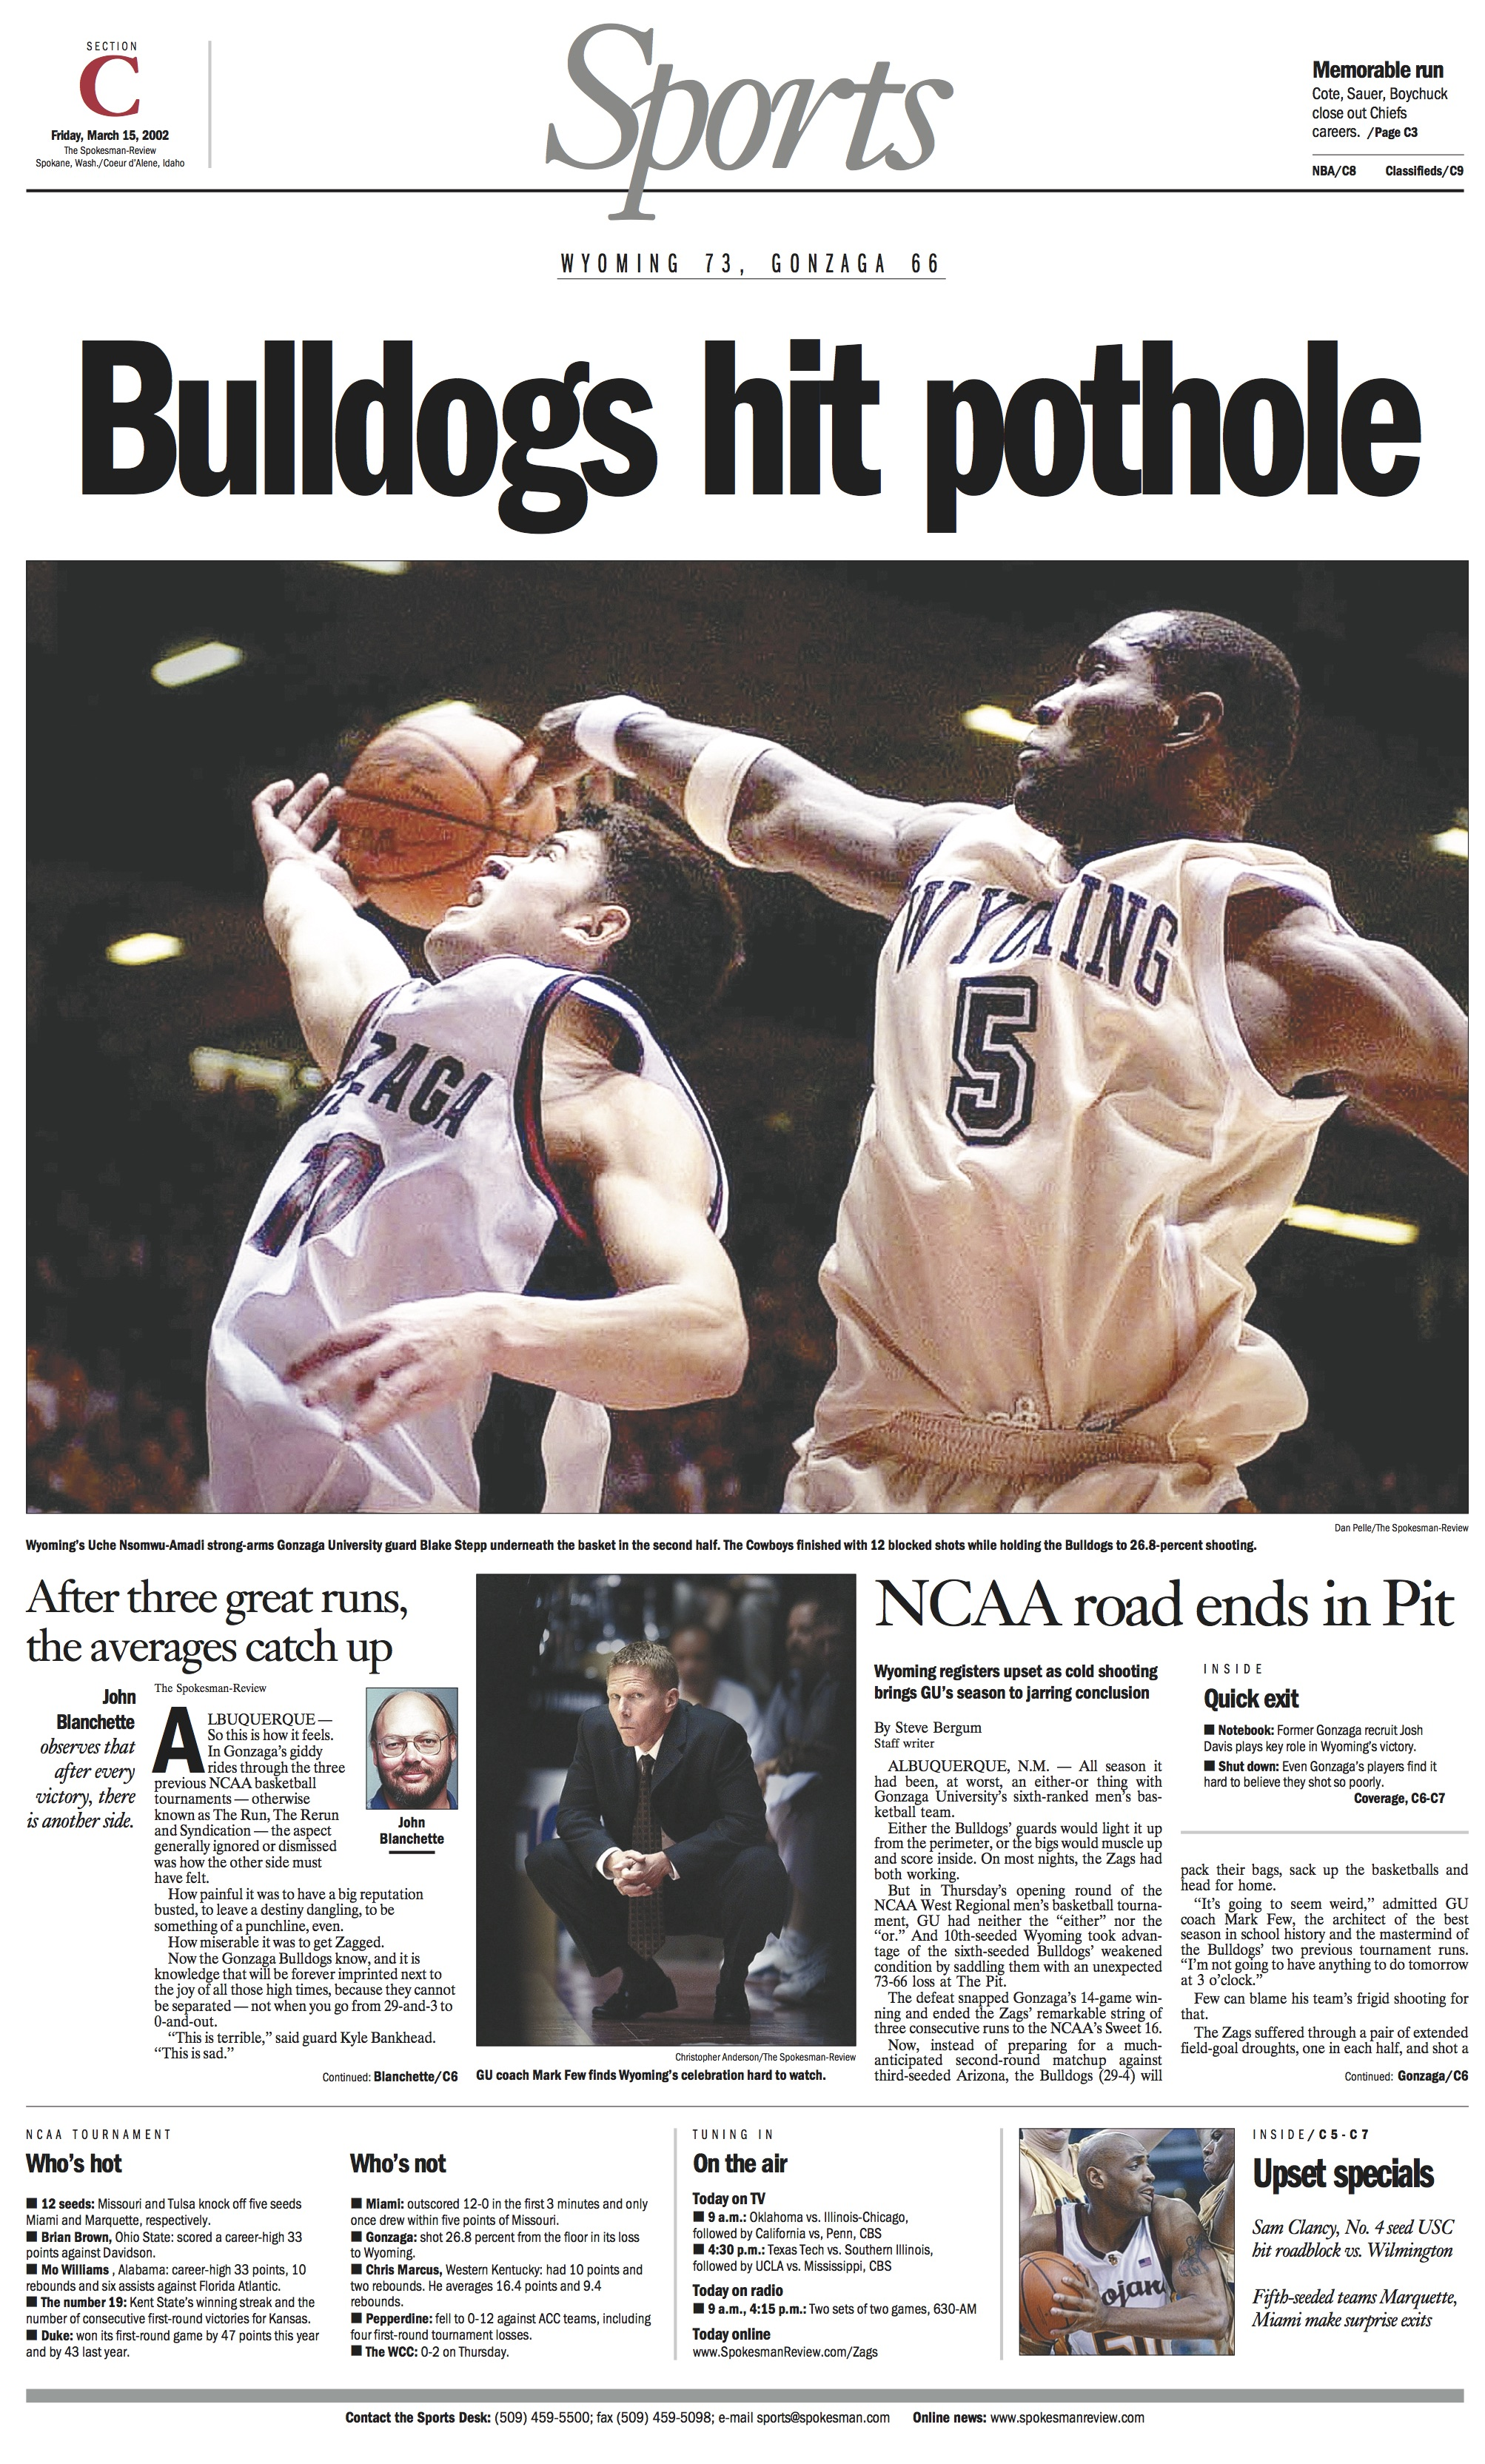 Historic page: March 15, 2002